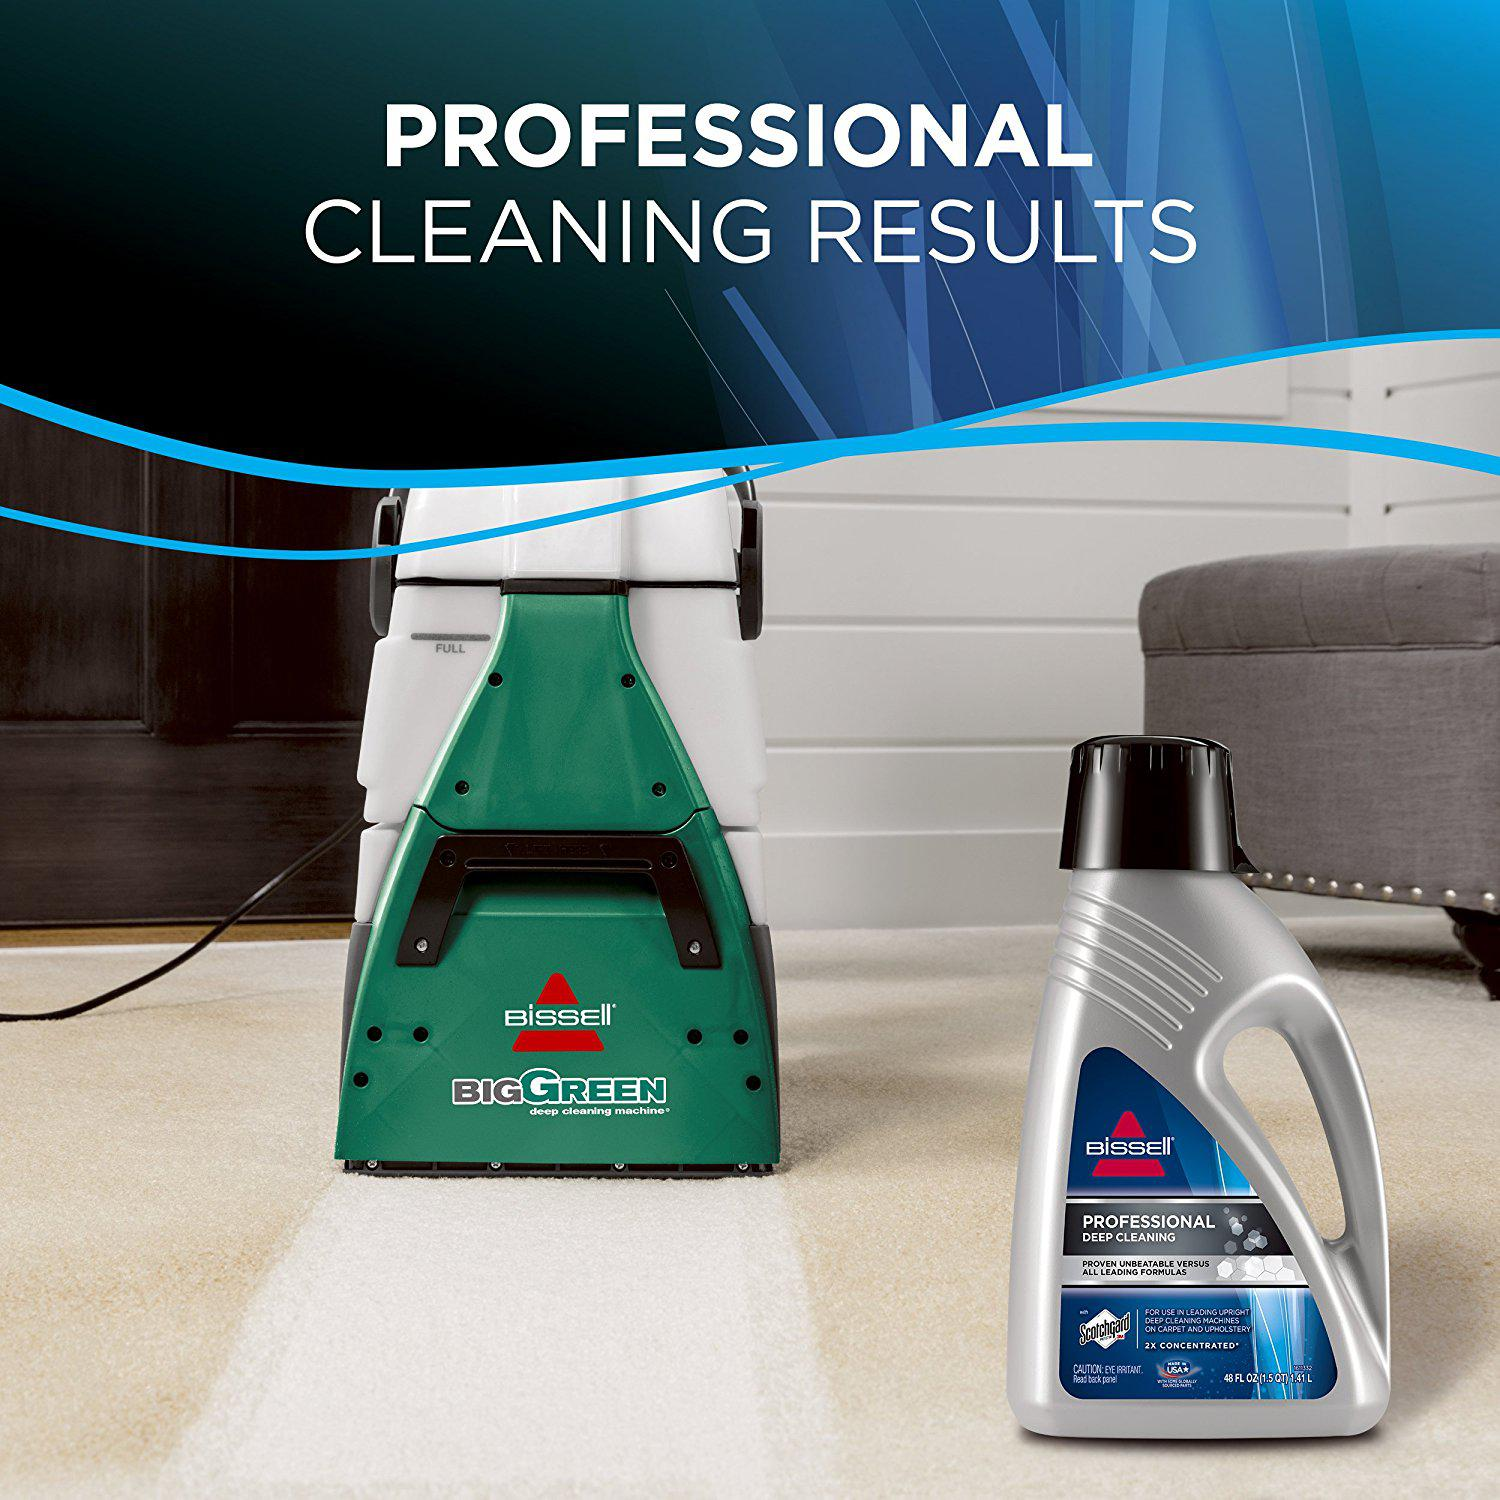 Bissell Deep Cleaning Professional Grade Carpet Cleaner